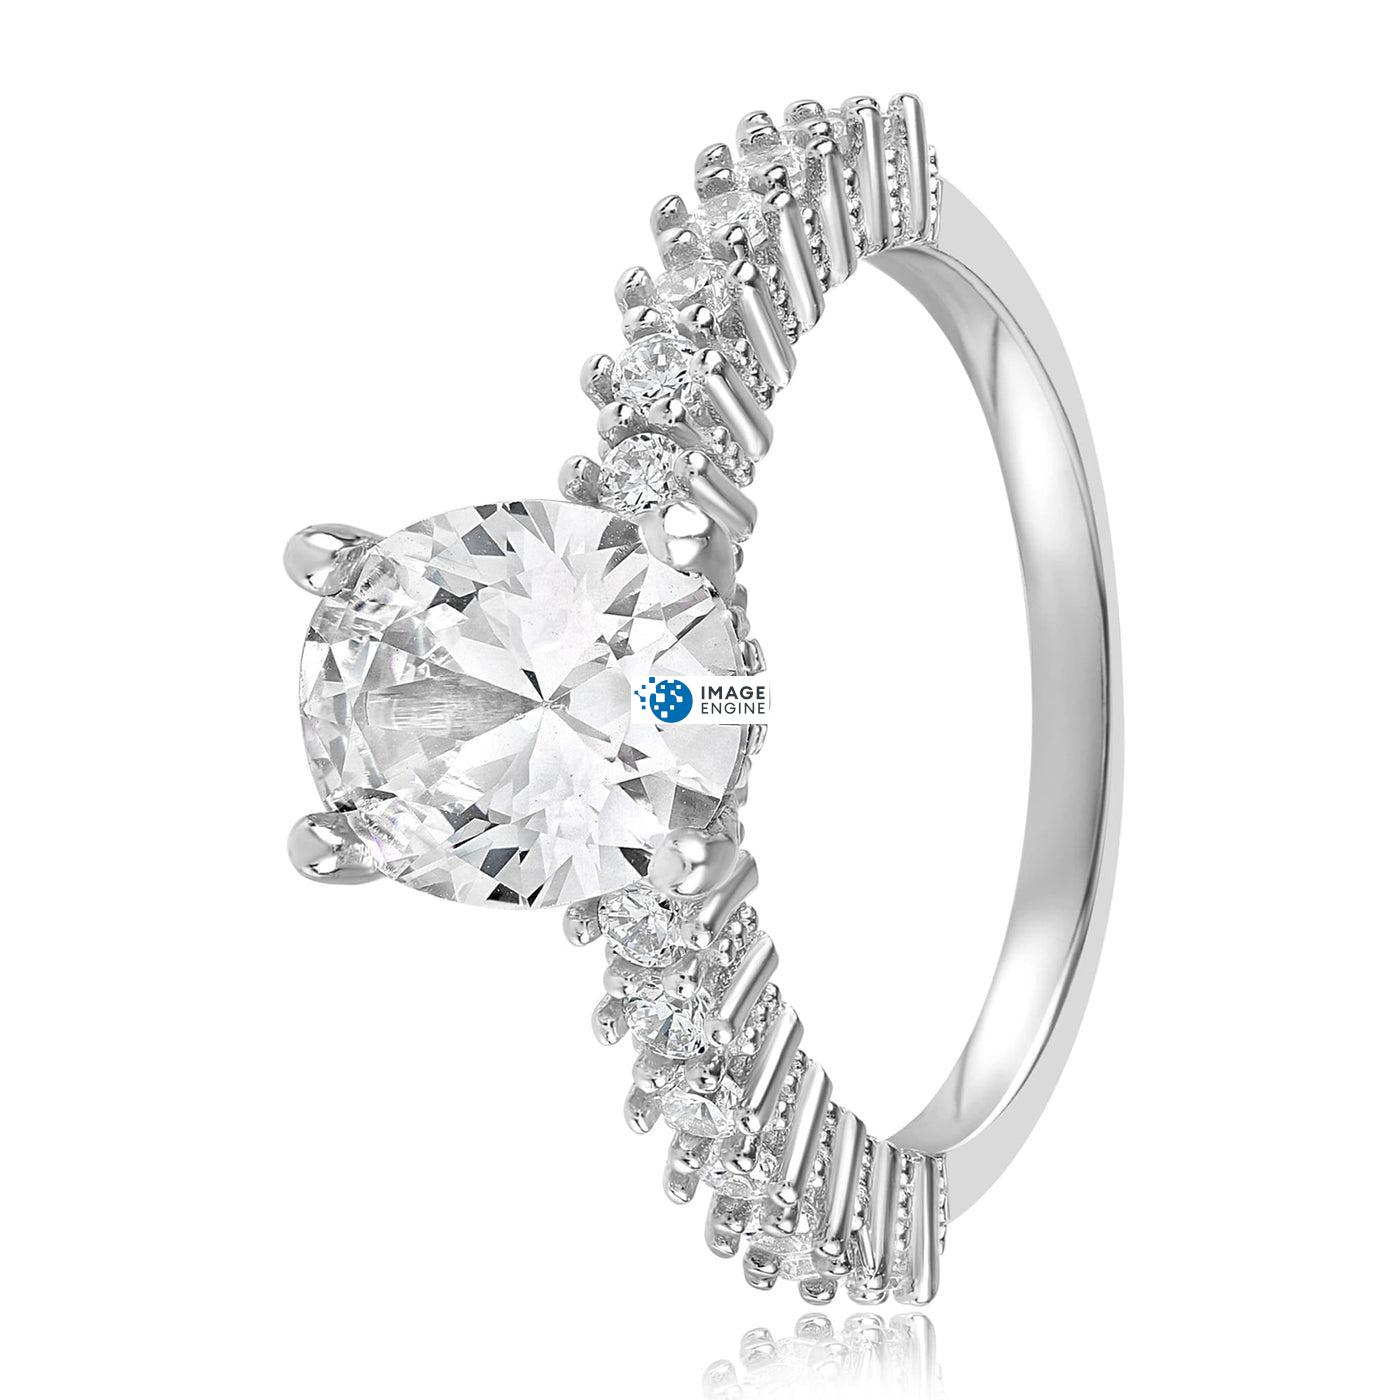 Cara Zirconia Ring - Side View - 925 Sterling Silver